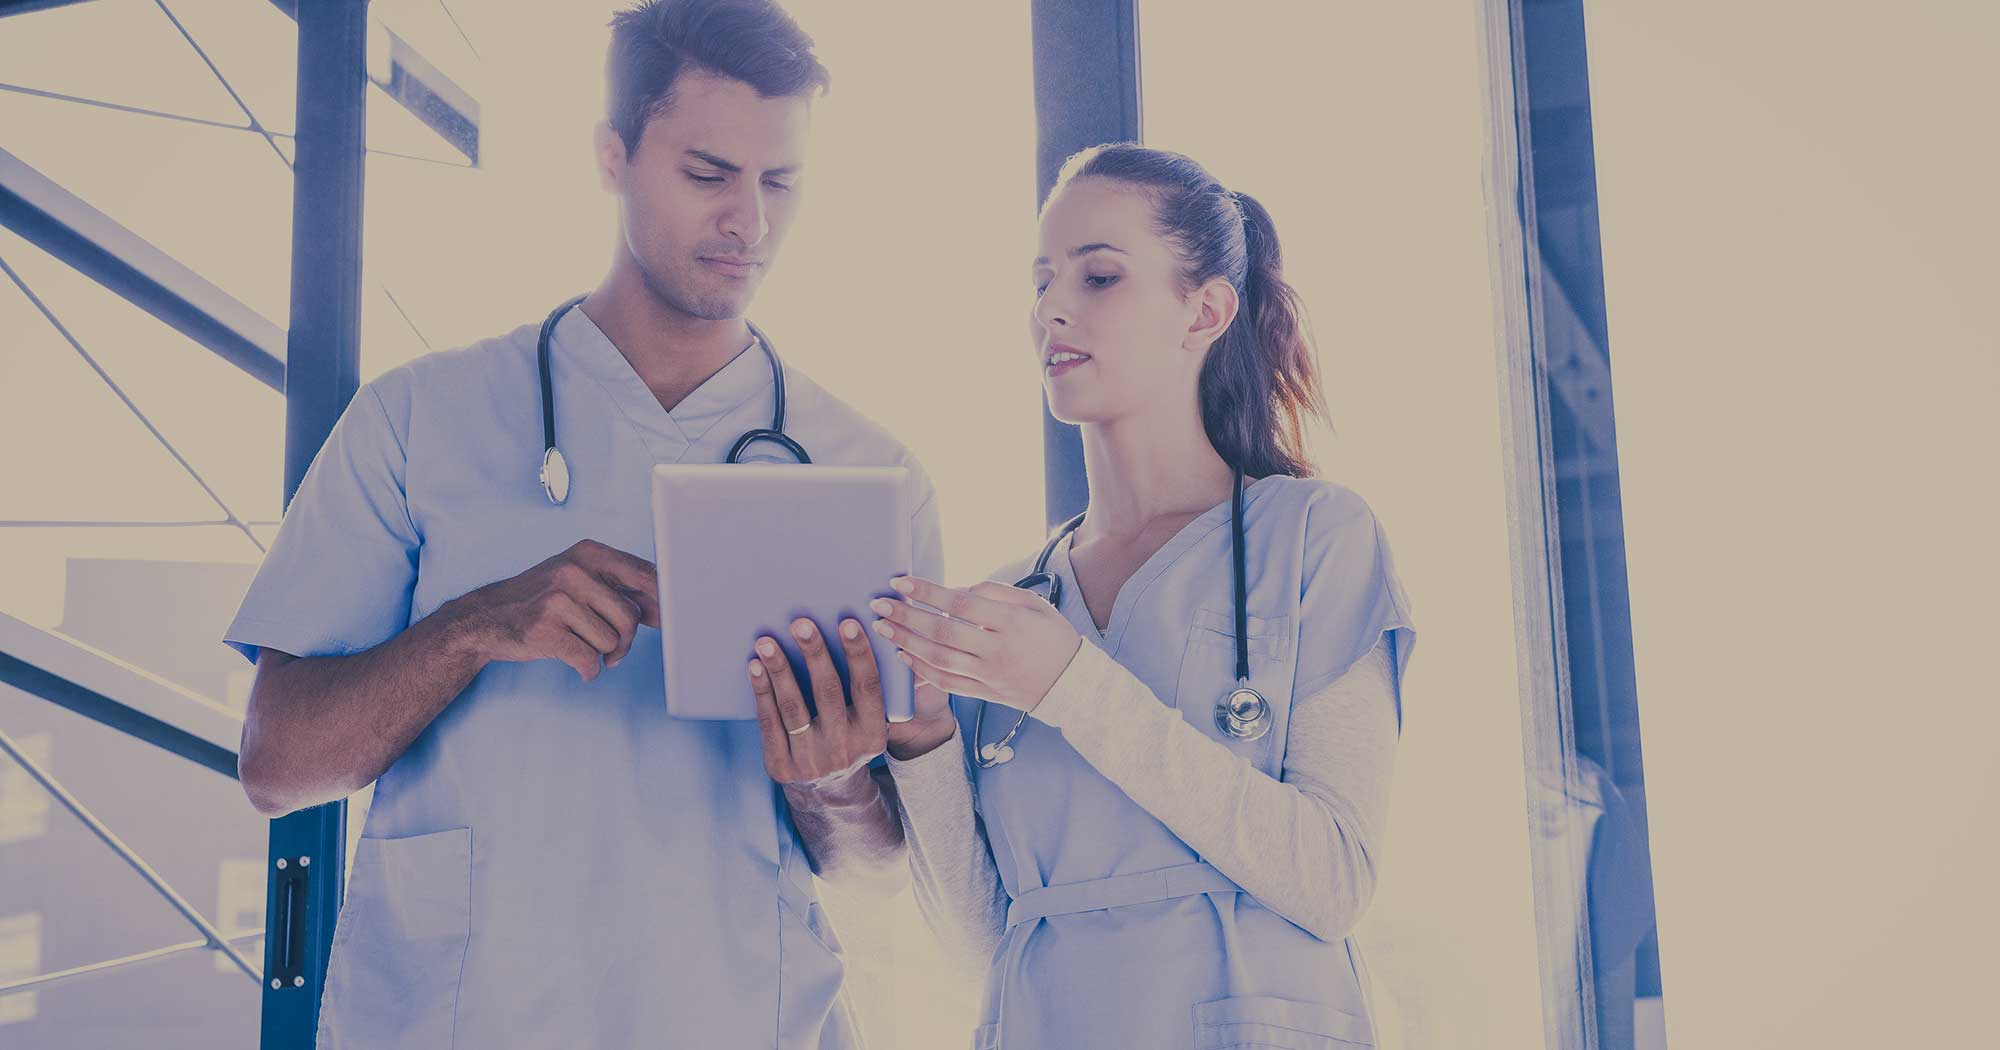 How Healthcare IT Can Solve Today's Mobility and Access Challenges